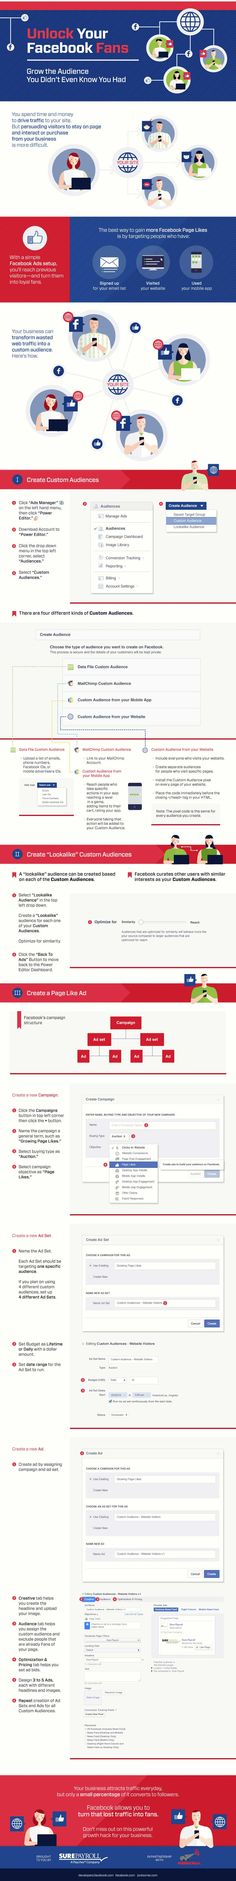 how to setup facebook ad #infographic